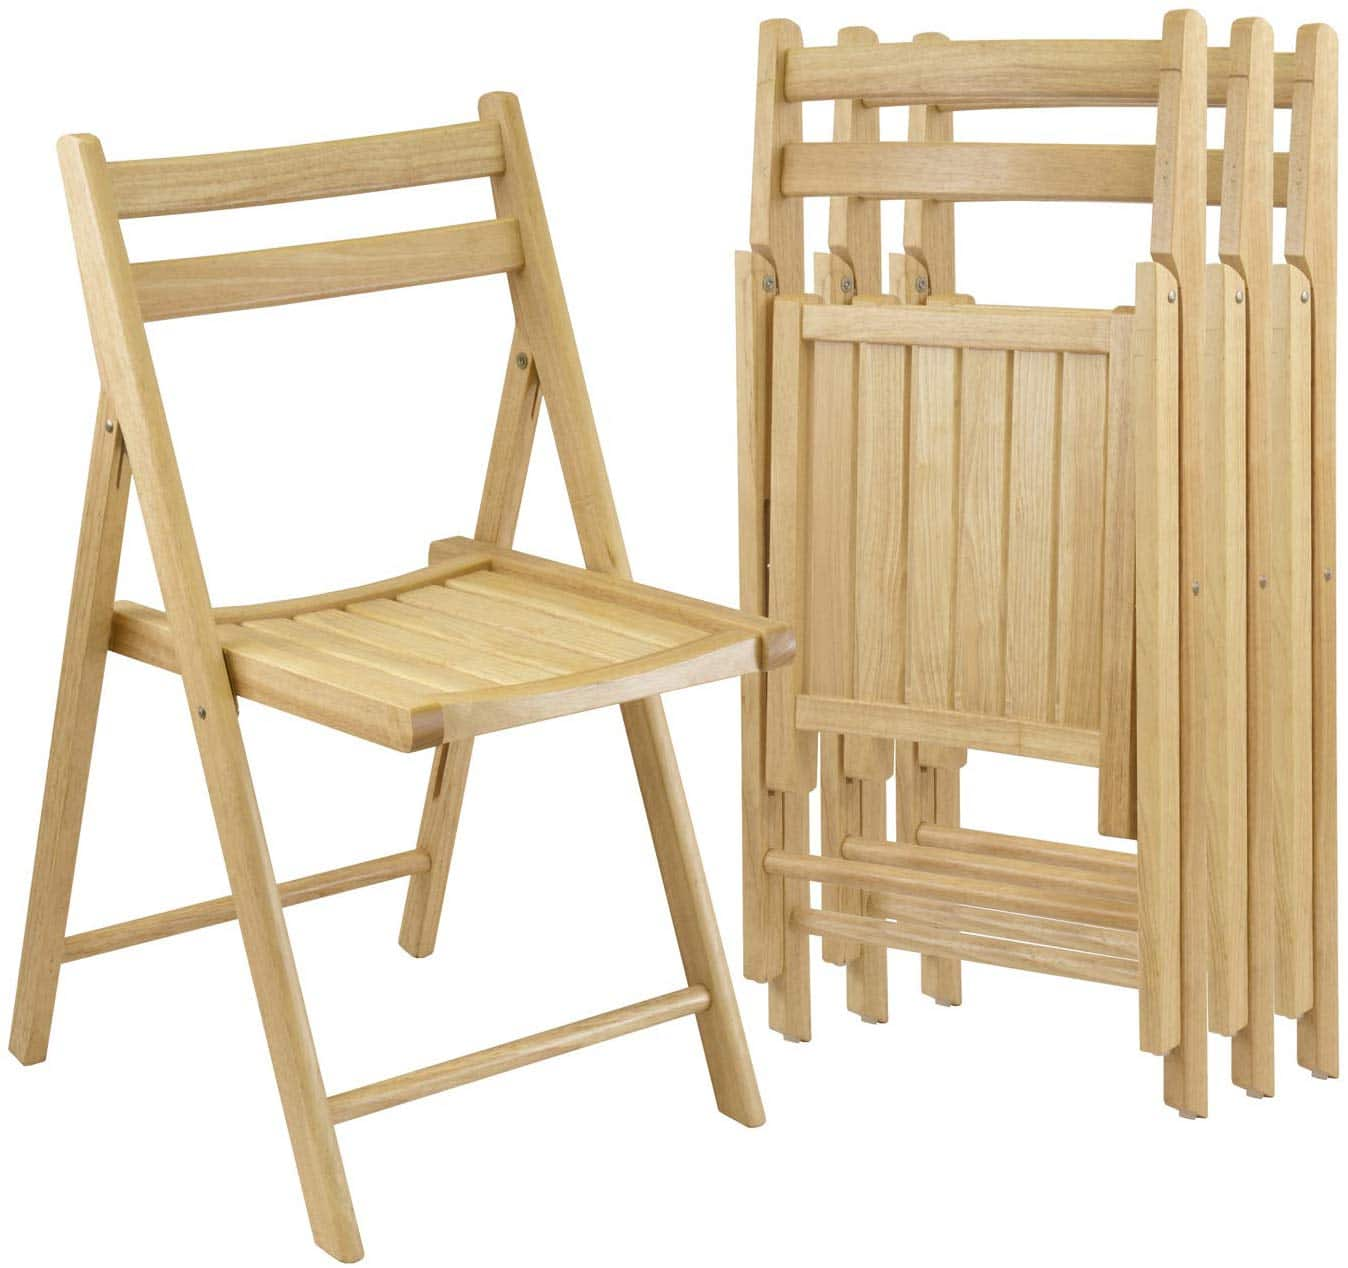 Winsome Robin 4-PC Folding Chair Set